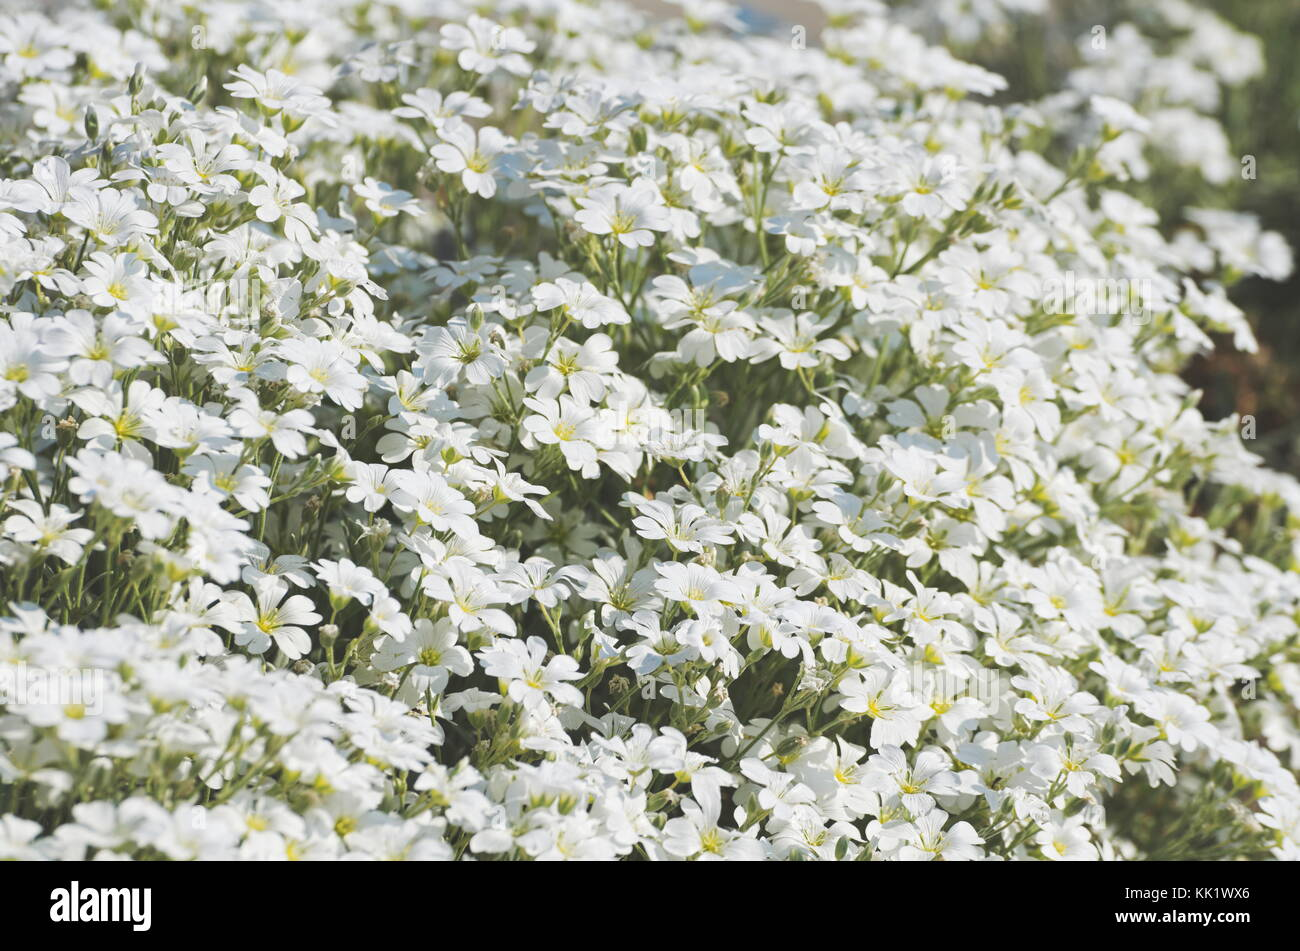 Many tiny white flowers stock photos many tiny white flowers stock lush field of small white flowers closeup stock image mightylinksfo